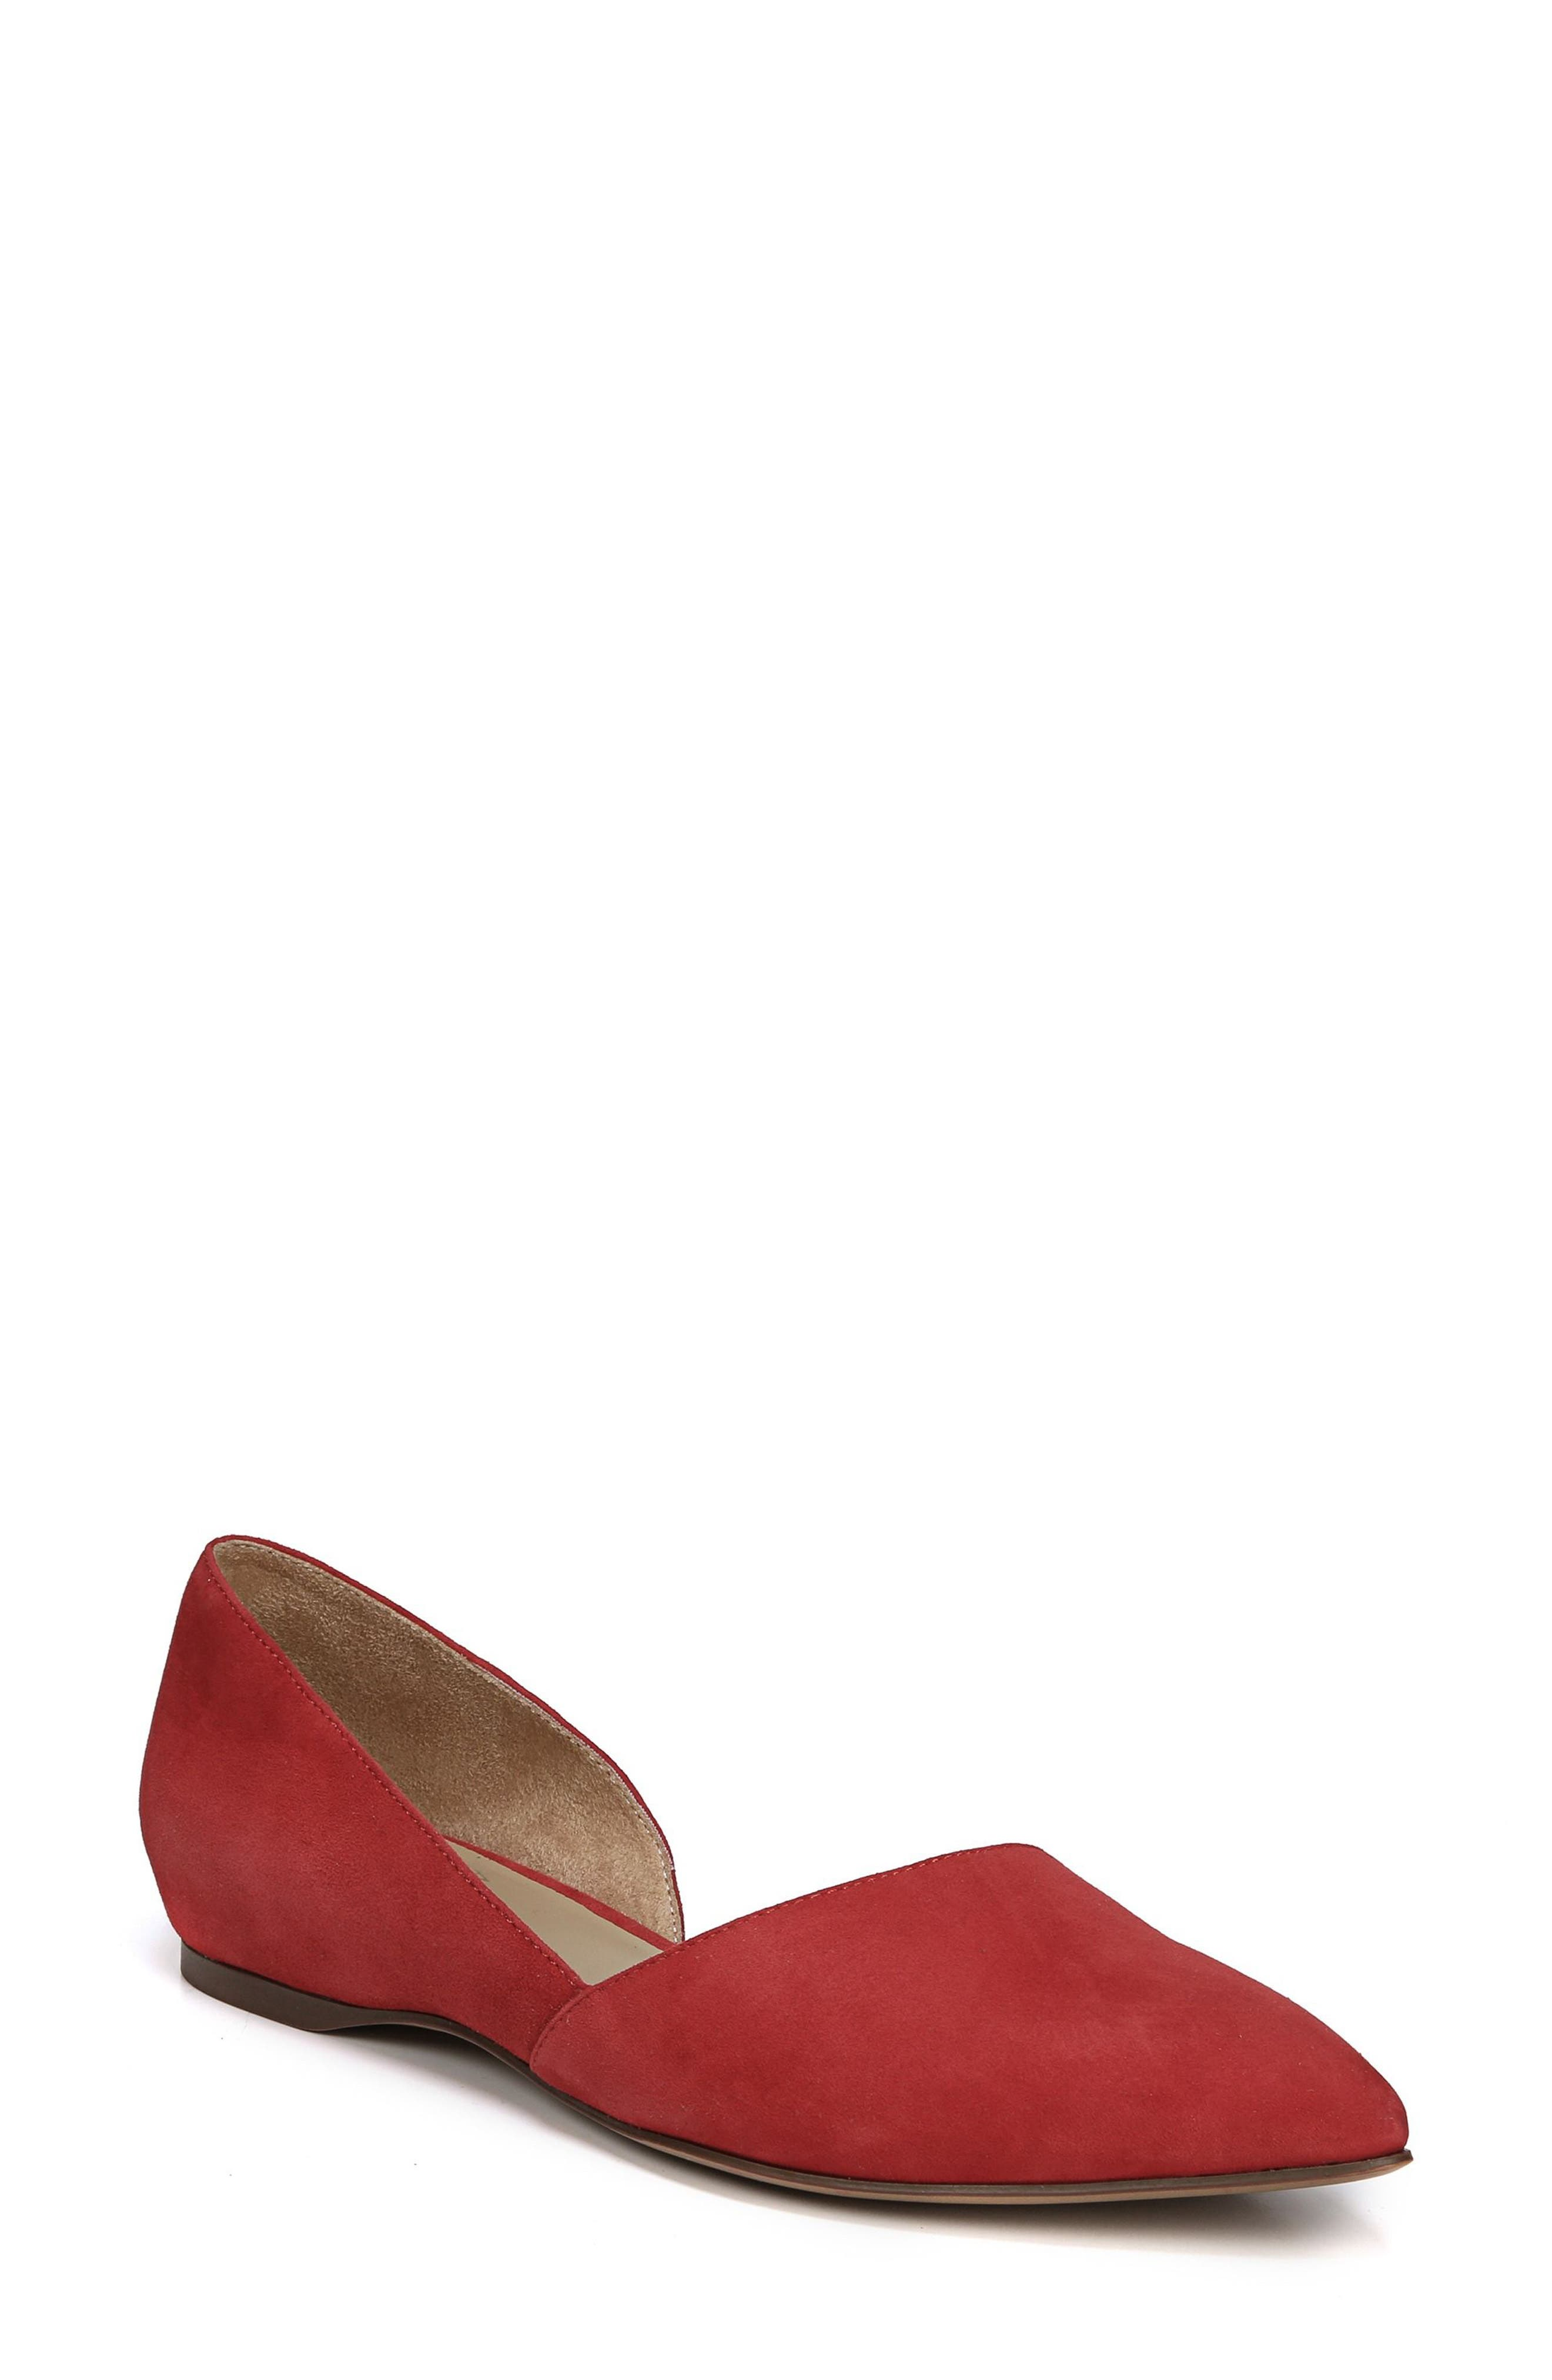 Samantha Half d'Orsay Flat,                         Main,                         color, Hot Sauce Suede